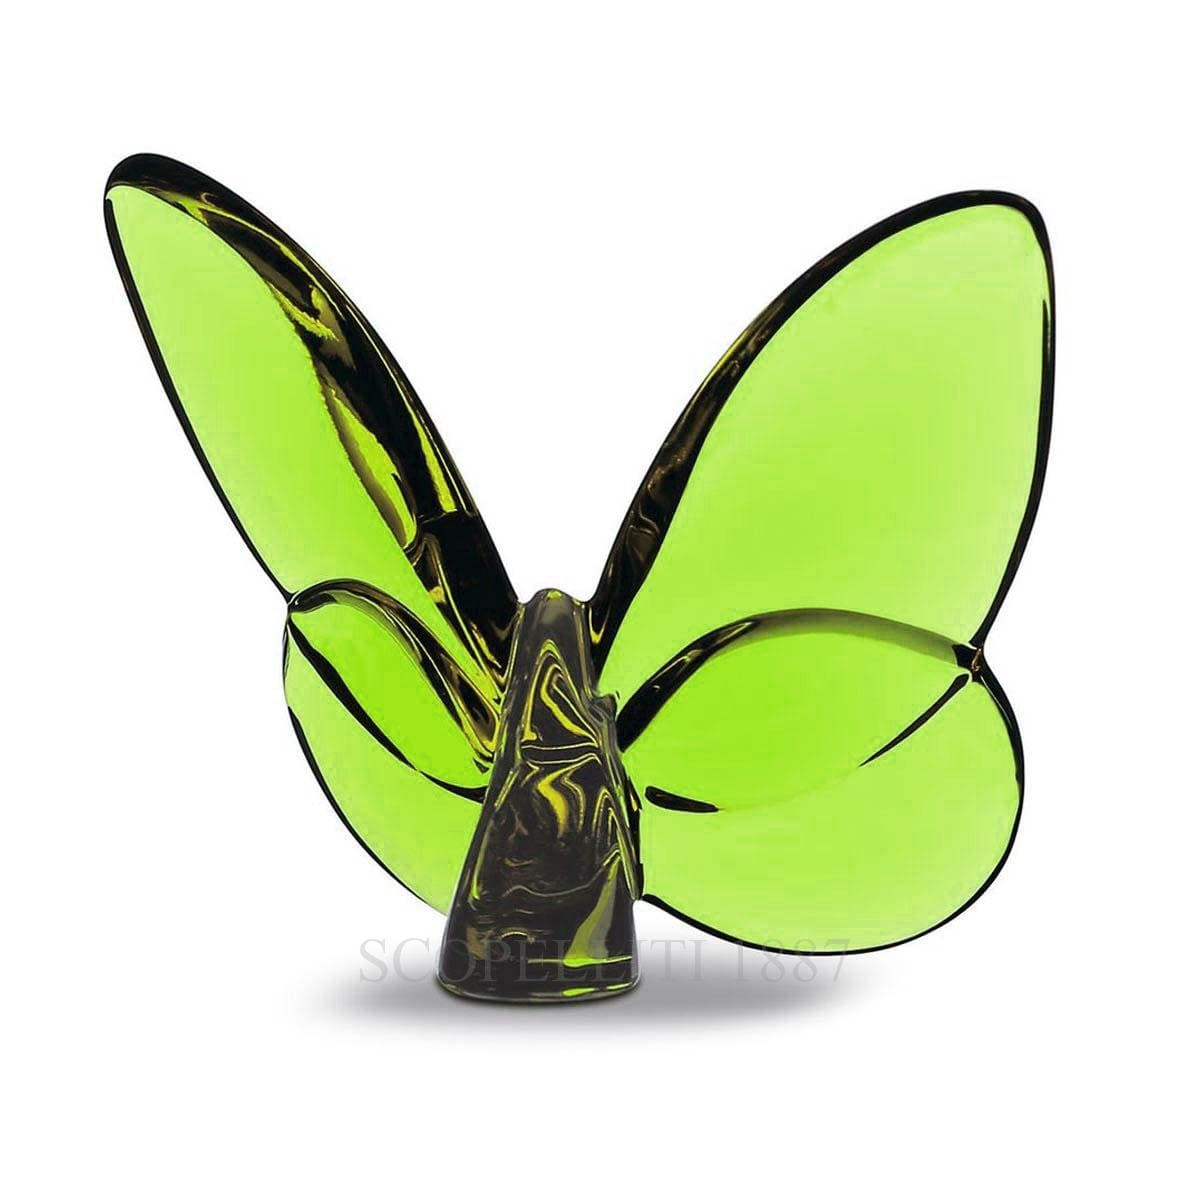 baccarat crystal french design green porte bonheur butterfly